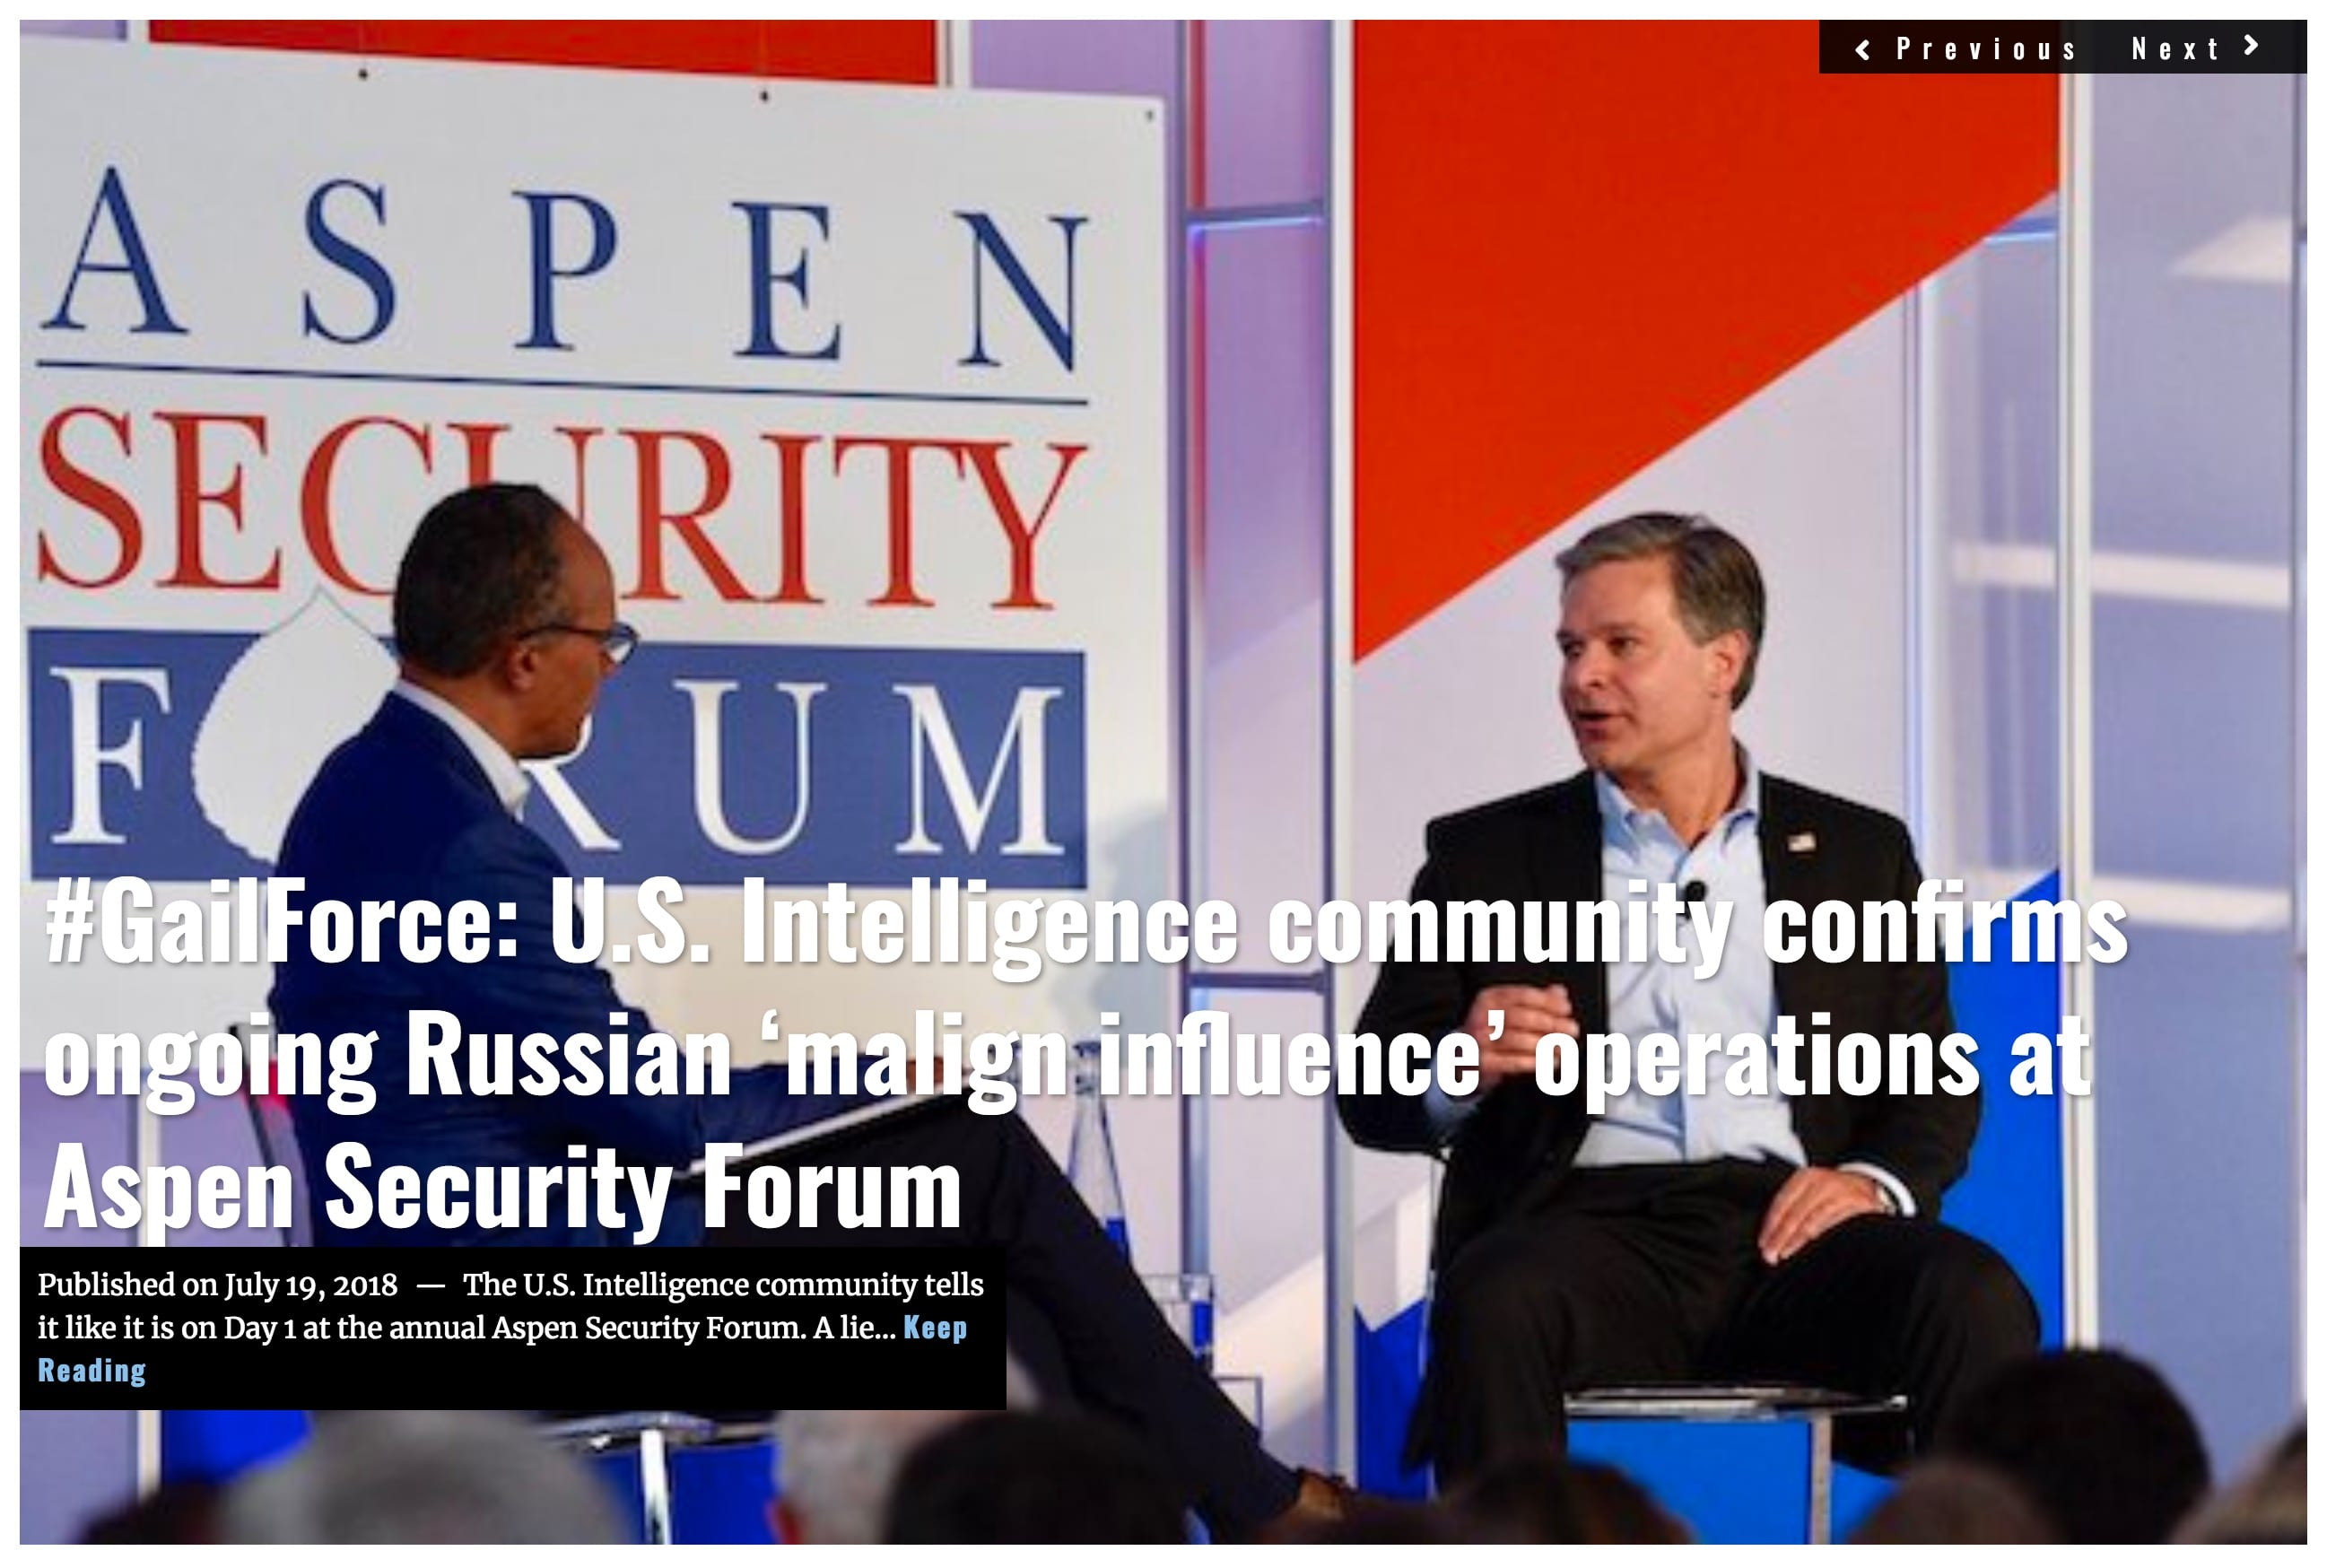 Image Lima Charlie News Headline Aspen Security Day 1 JUL 19 2018 (1)